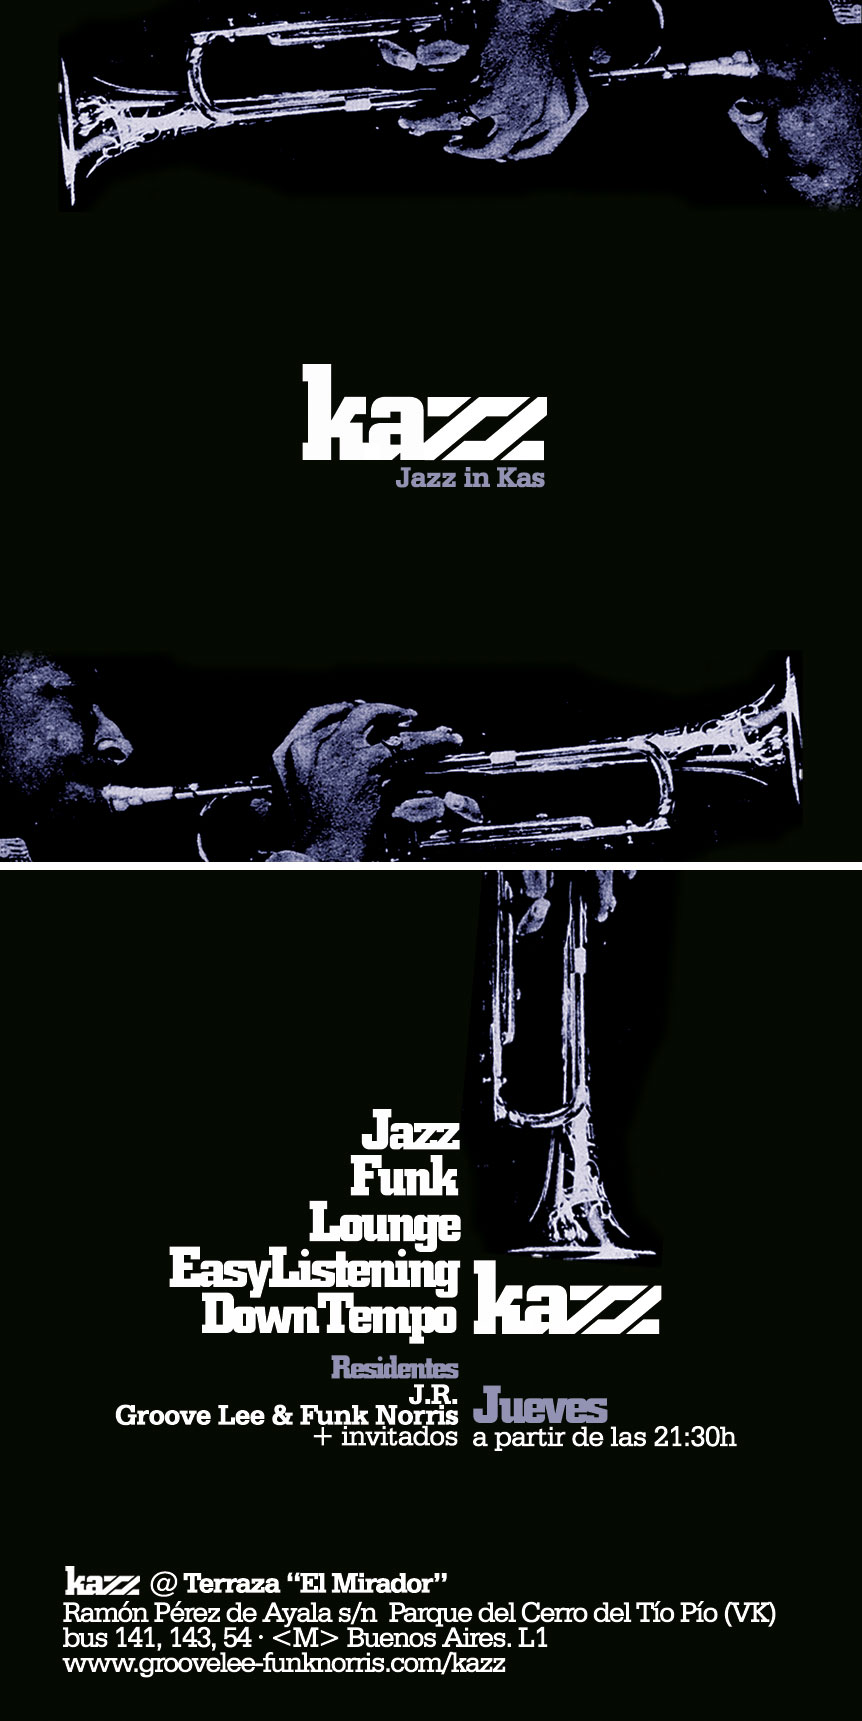 kazz. Jazz in Kas